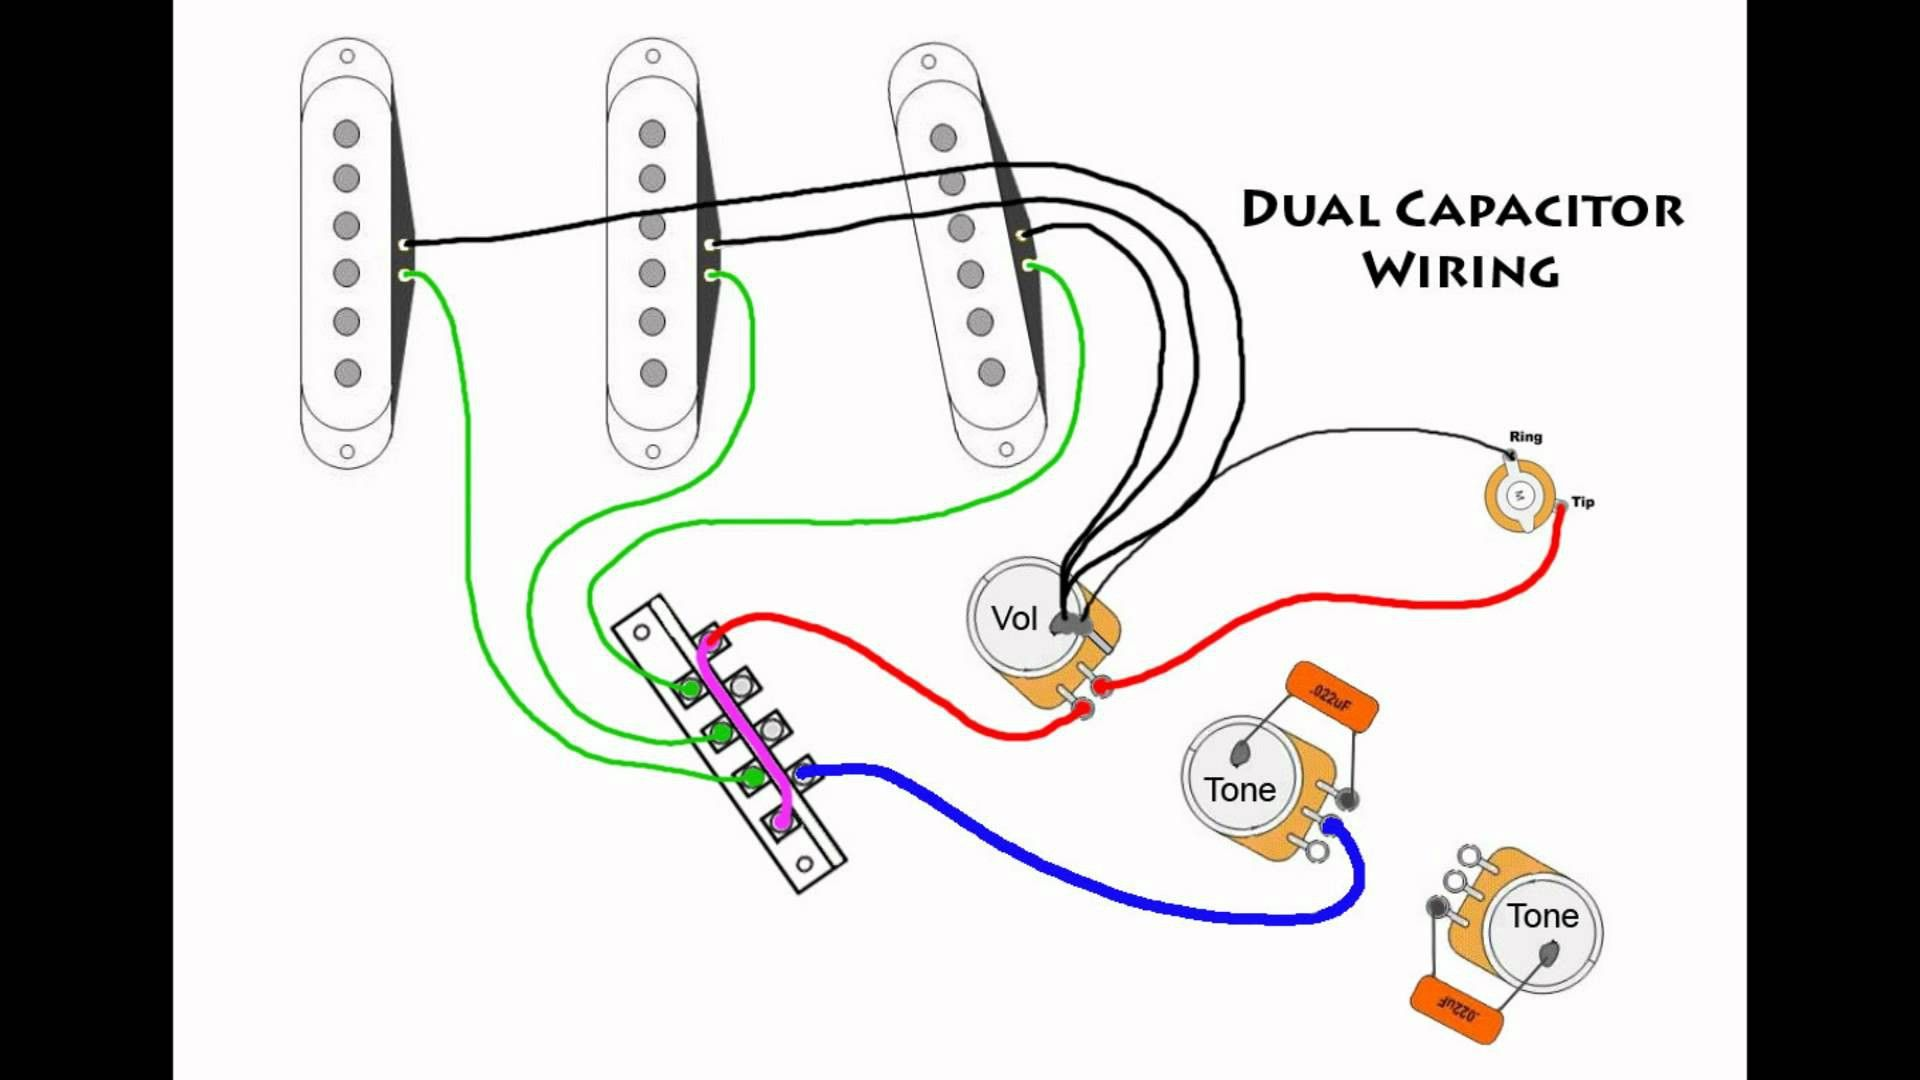 D785 Lexus Is 220d Wiring Diagram | ePANEL Digital Books on lexus is f, lexus is 2014 interior, lexus is 350, lexus is 300, lexus is 250, lexus is 220,